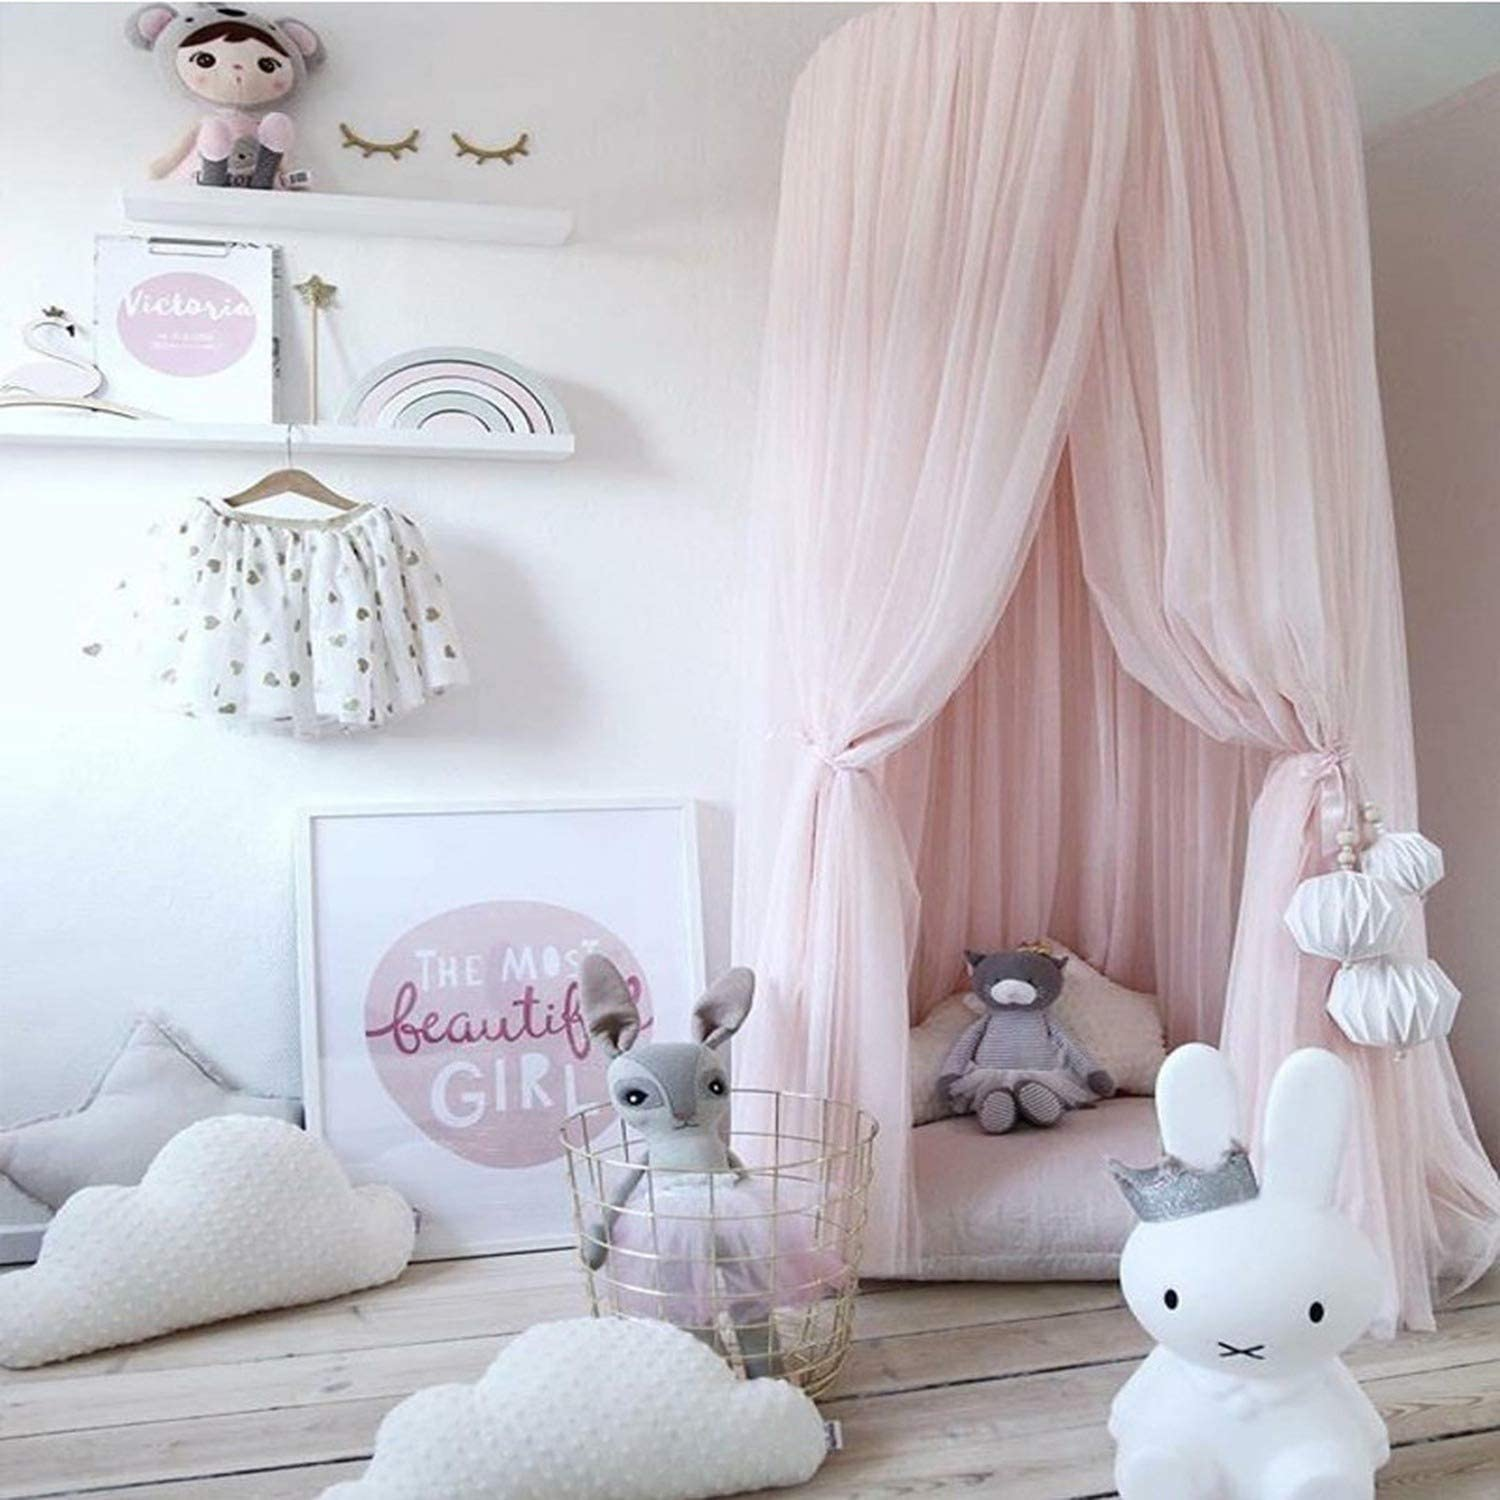 Hanging Kid Bedding Round Dome Bed Canopy Bedcover Mosquito Net Curtain Home Bed Crib Tent Hung Dome Two Layer of Net Yarn 240Cm,White